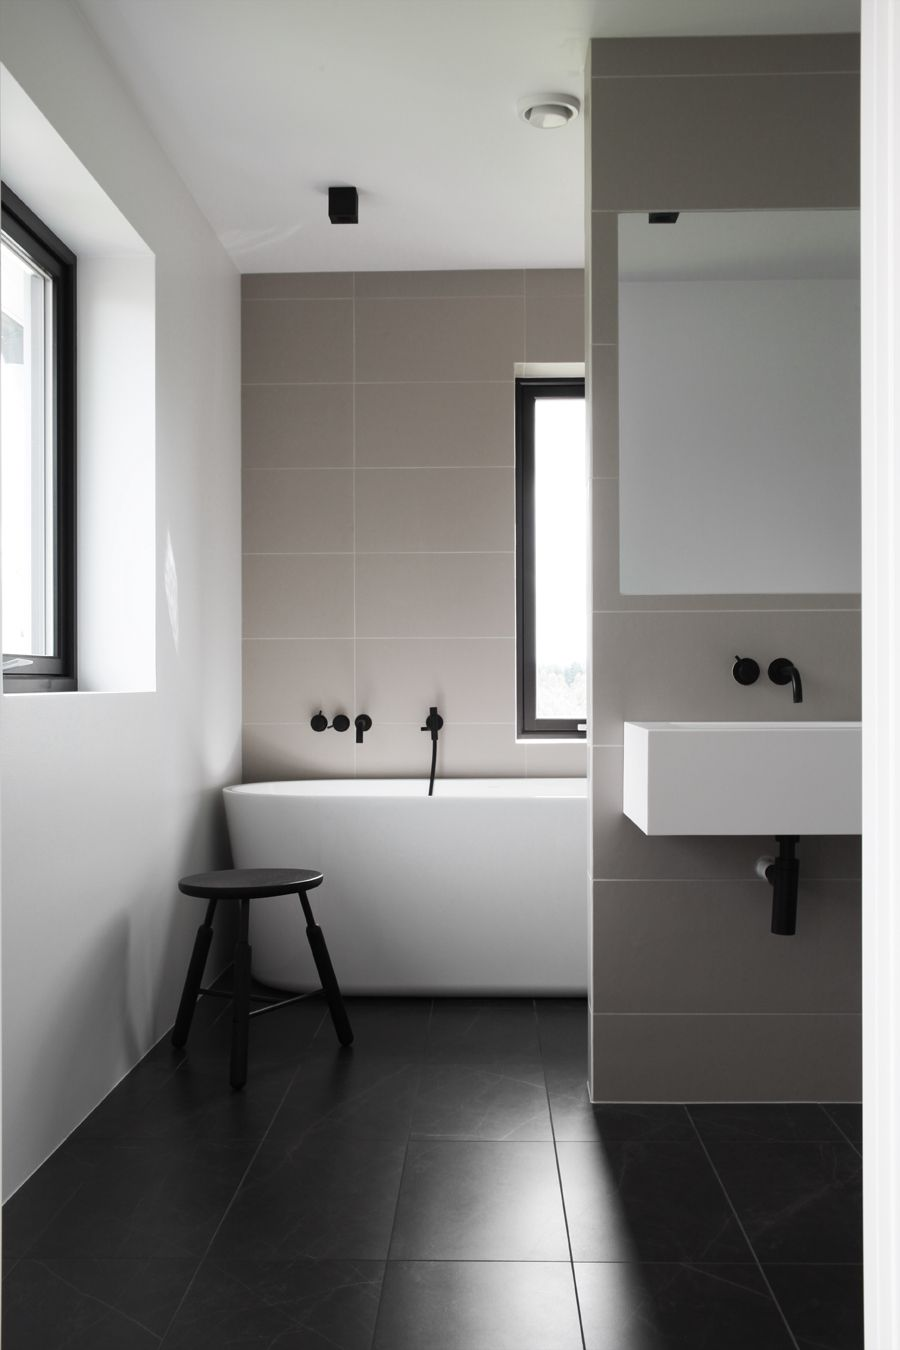 COCOON modern bathroom inspiration bycocoon.com | minimal | high ...